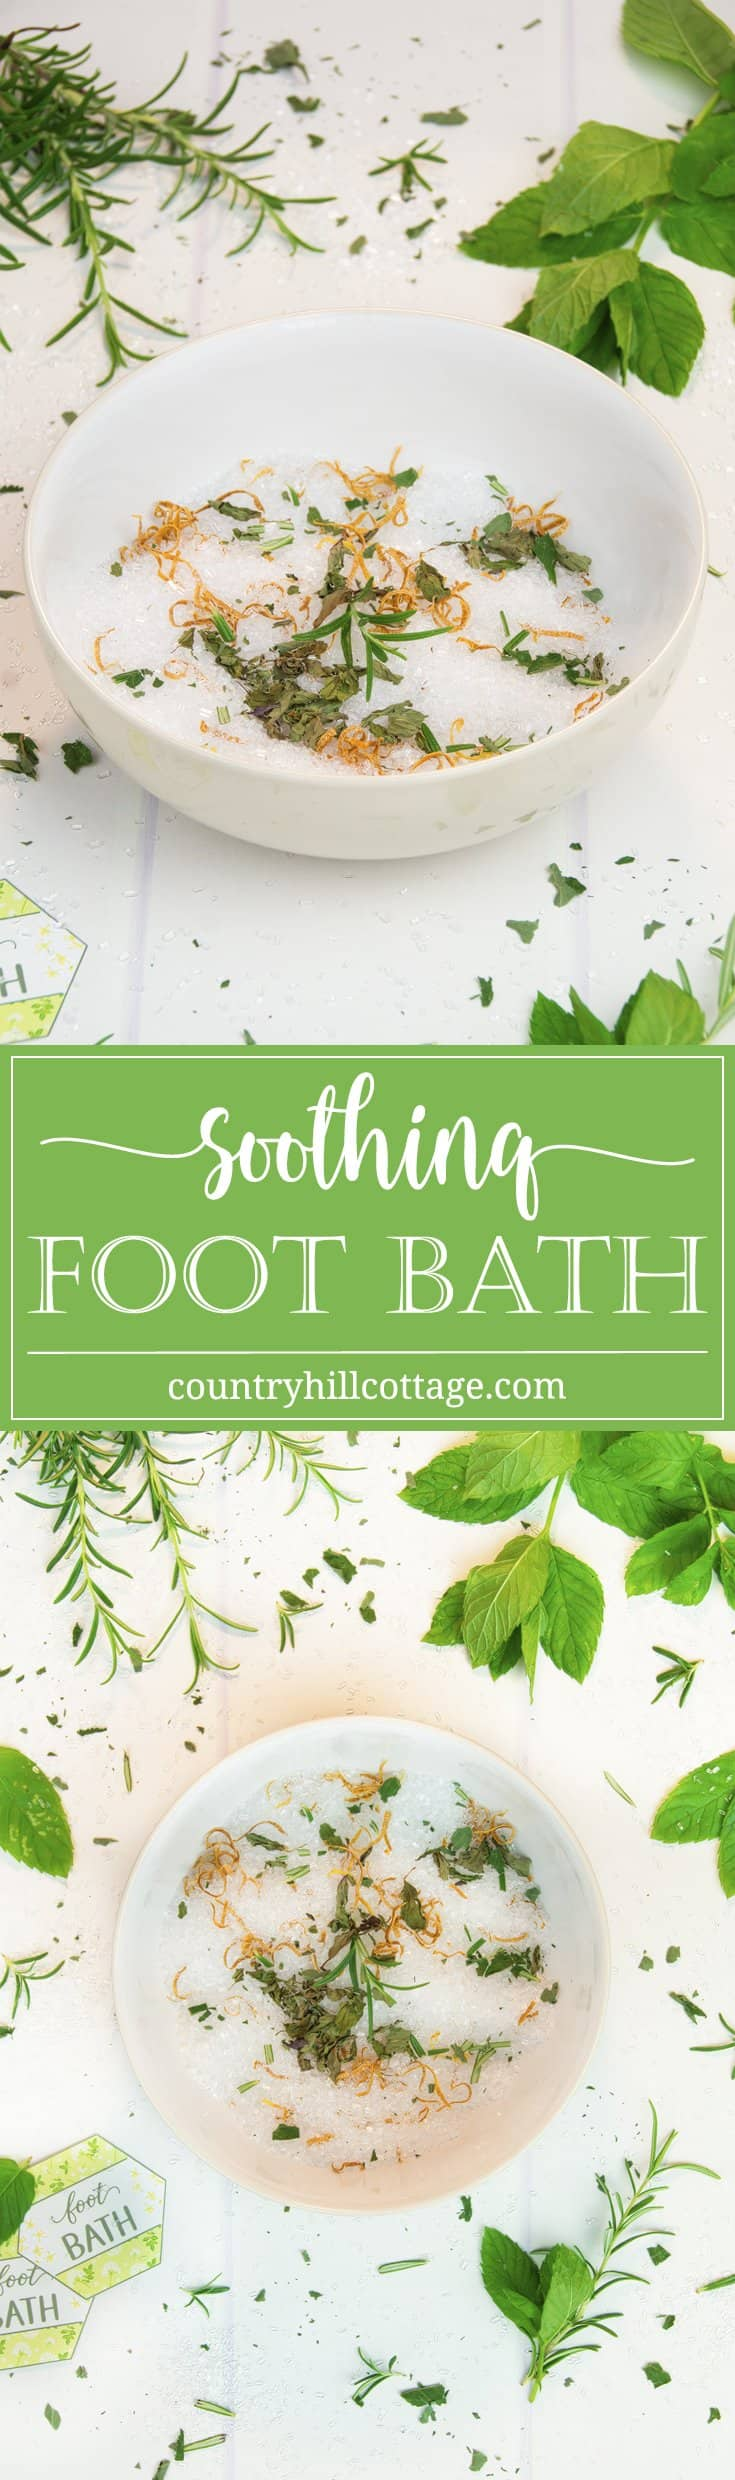 A homemade foot bath is a wonderful DIY spa experience! You can set up a foot bath in preparation for a mani-pedi, to soothe swollen feet on a hot summer day, or to soften foot calluses and corns. The base is made with Epsom salt, a magnesium sulfate compound known to reduce inflammation, relieve pain and eliminate odour. Tea tree oil helps to soften calluses, while peppermint oil and rosemary soothe cracked, dry skin. #footbath #epsomsalt #essentialoils #beautyrecipe   countryhillcottage.com